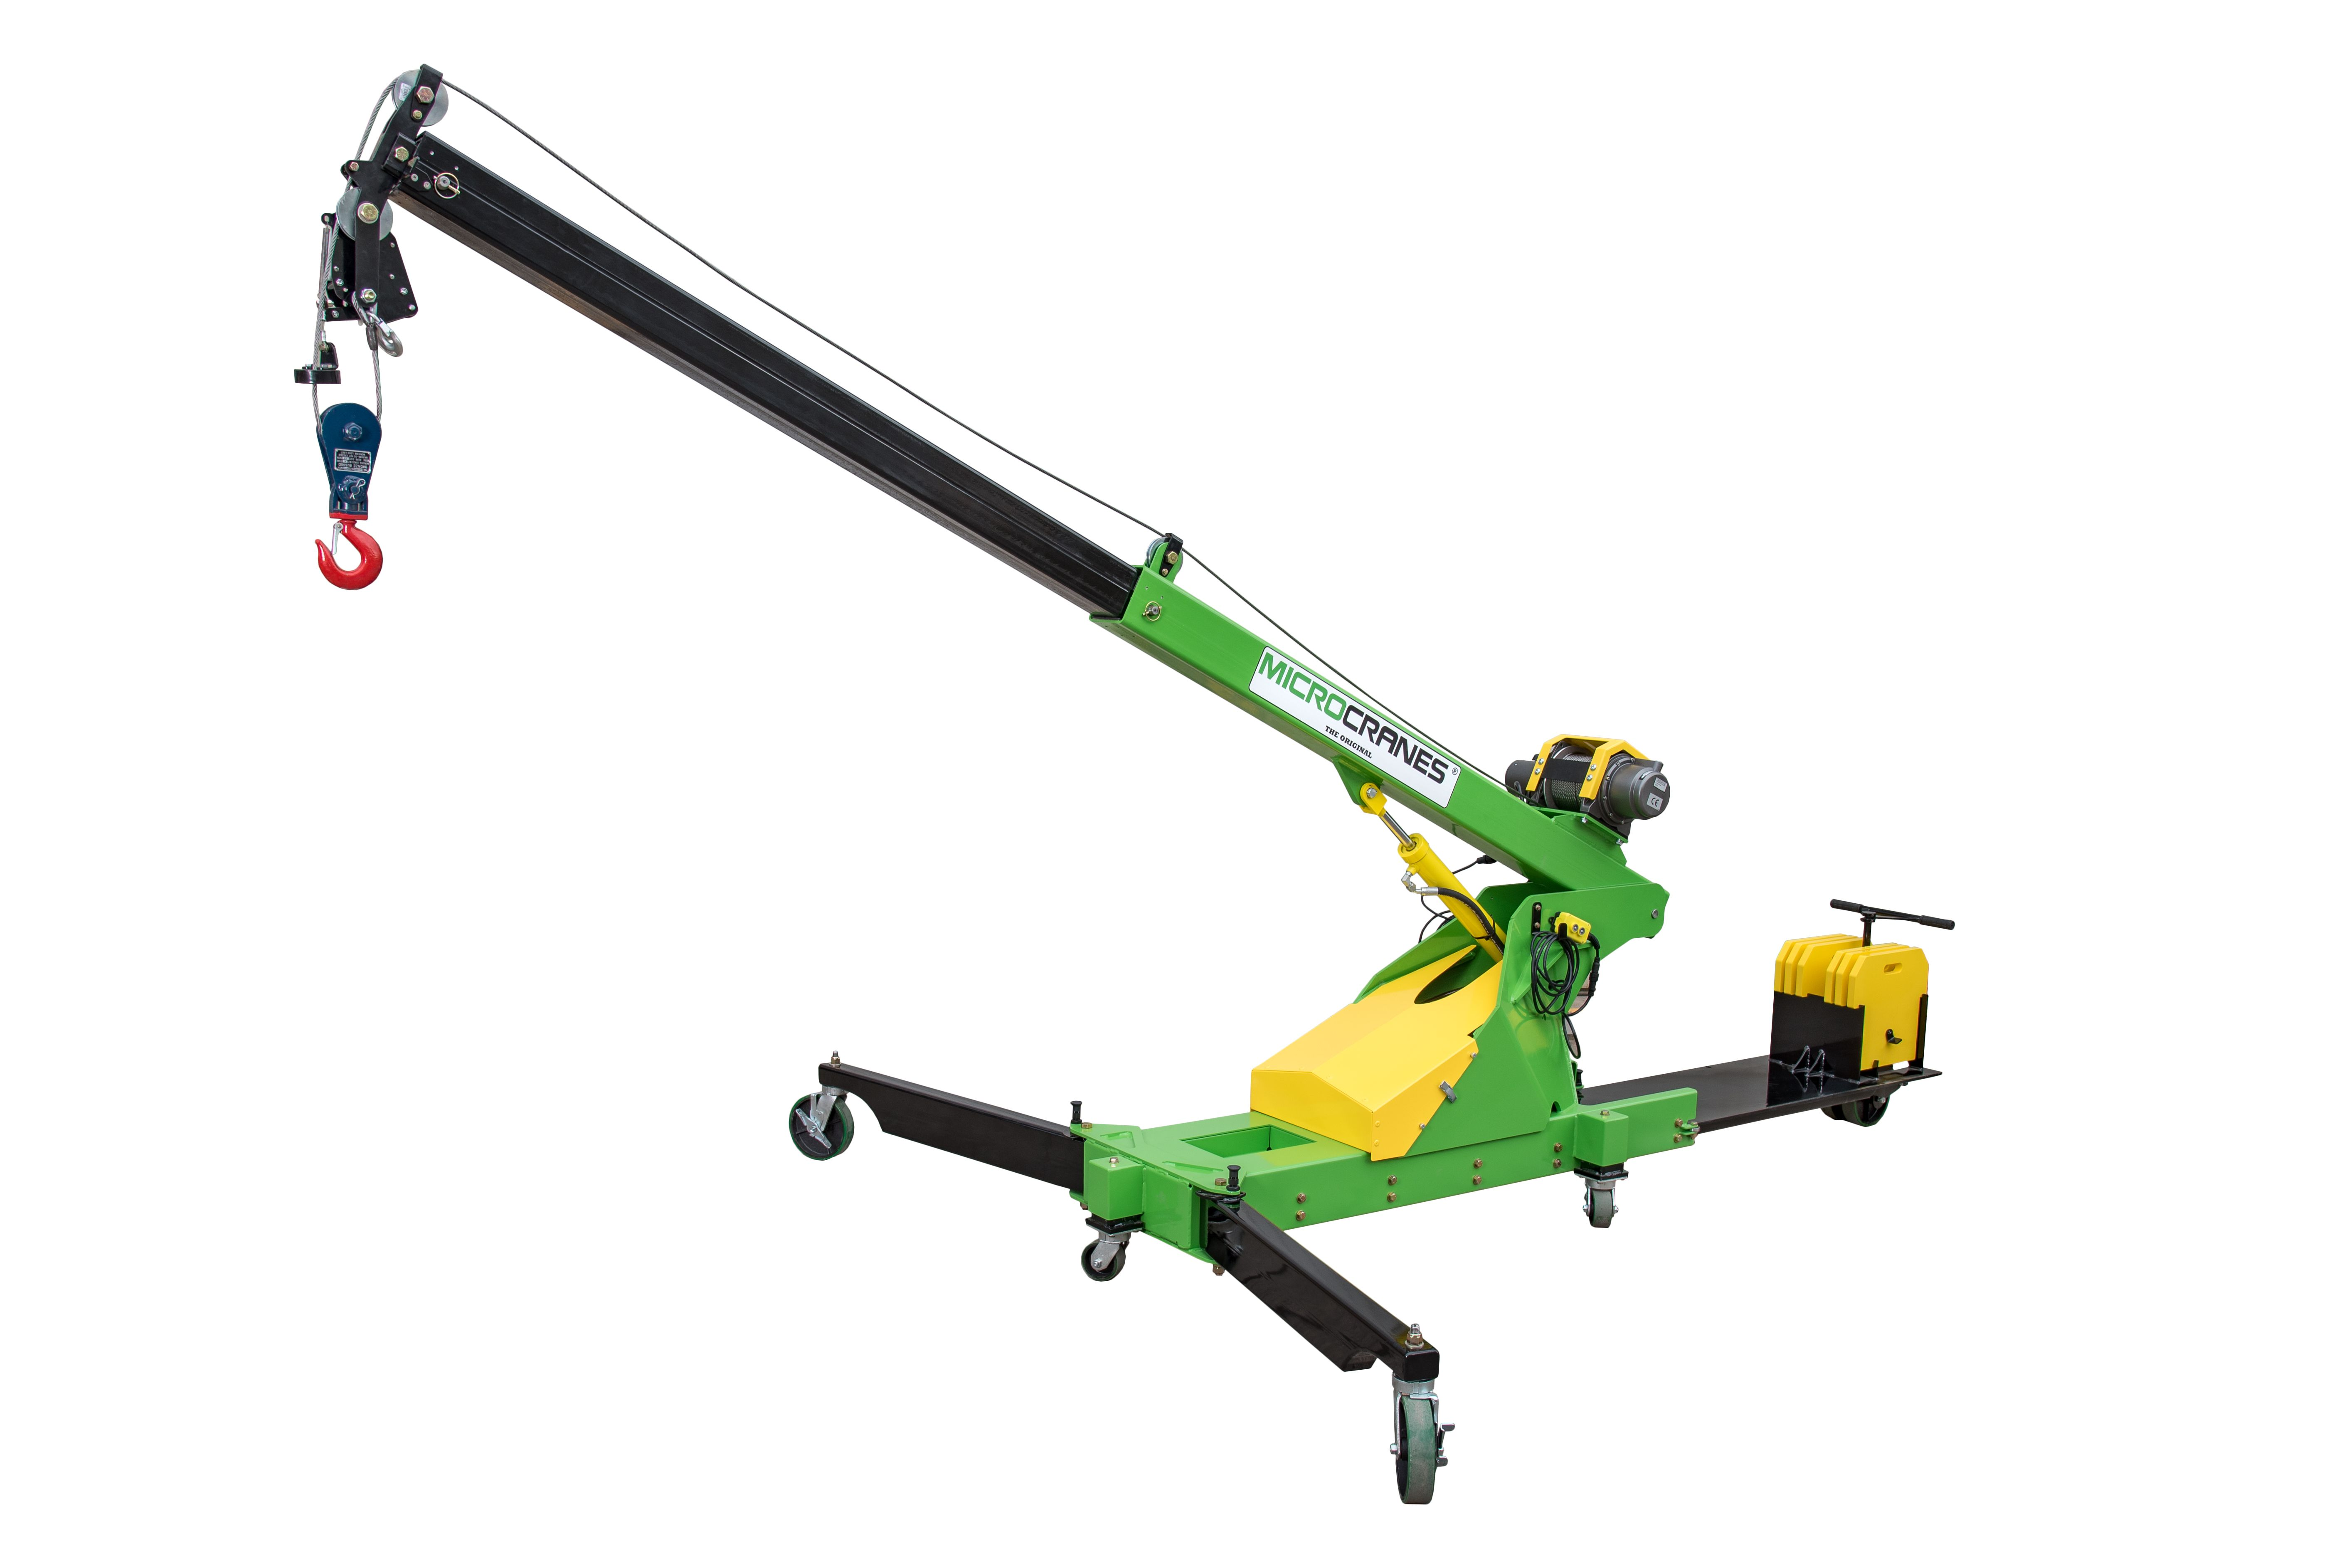 Roof Top Mini Crane Hoist Portable Construction Lifting